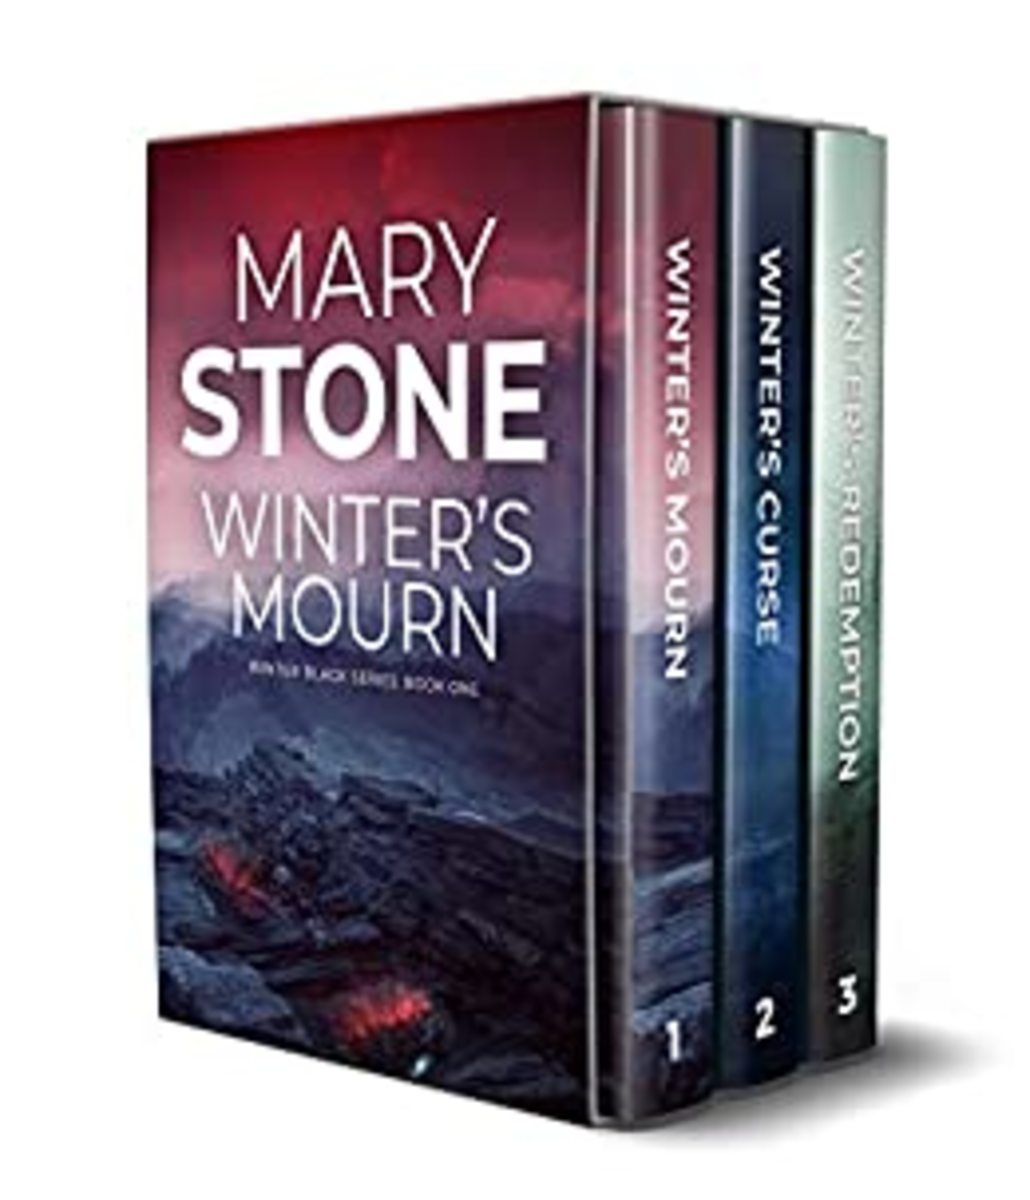 The first book collection of the Winter Black series